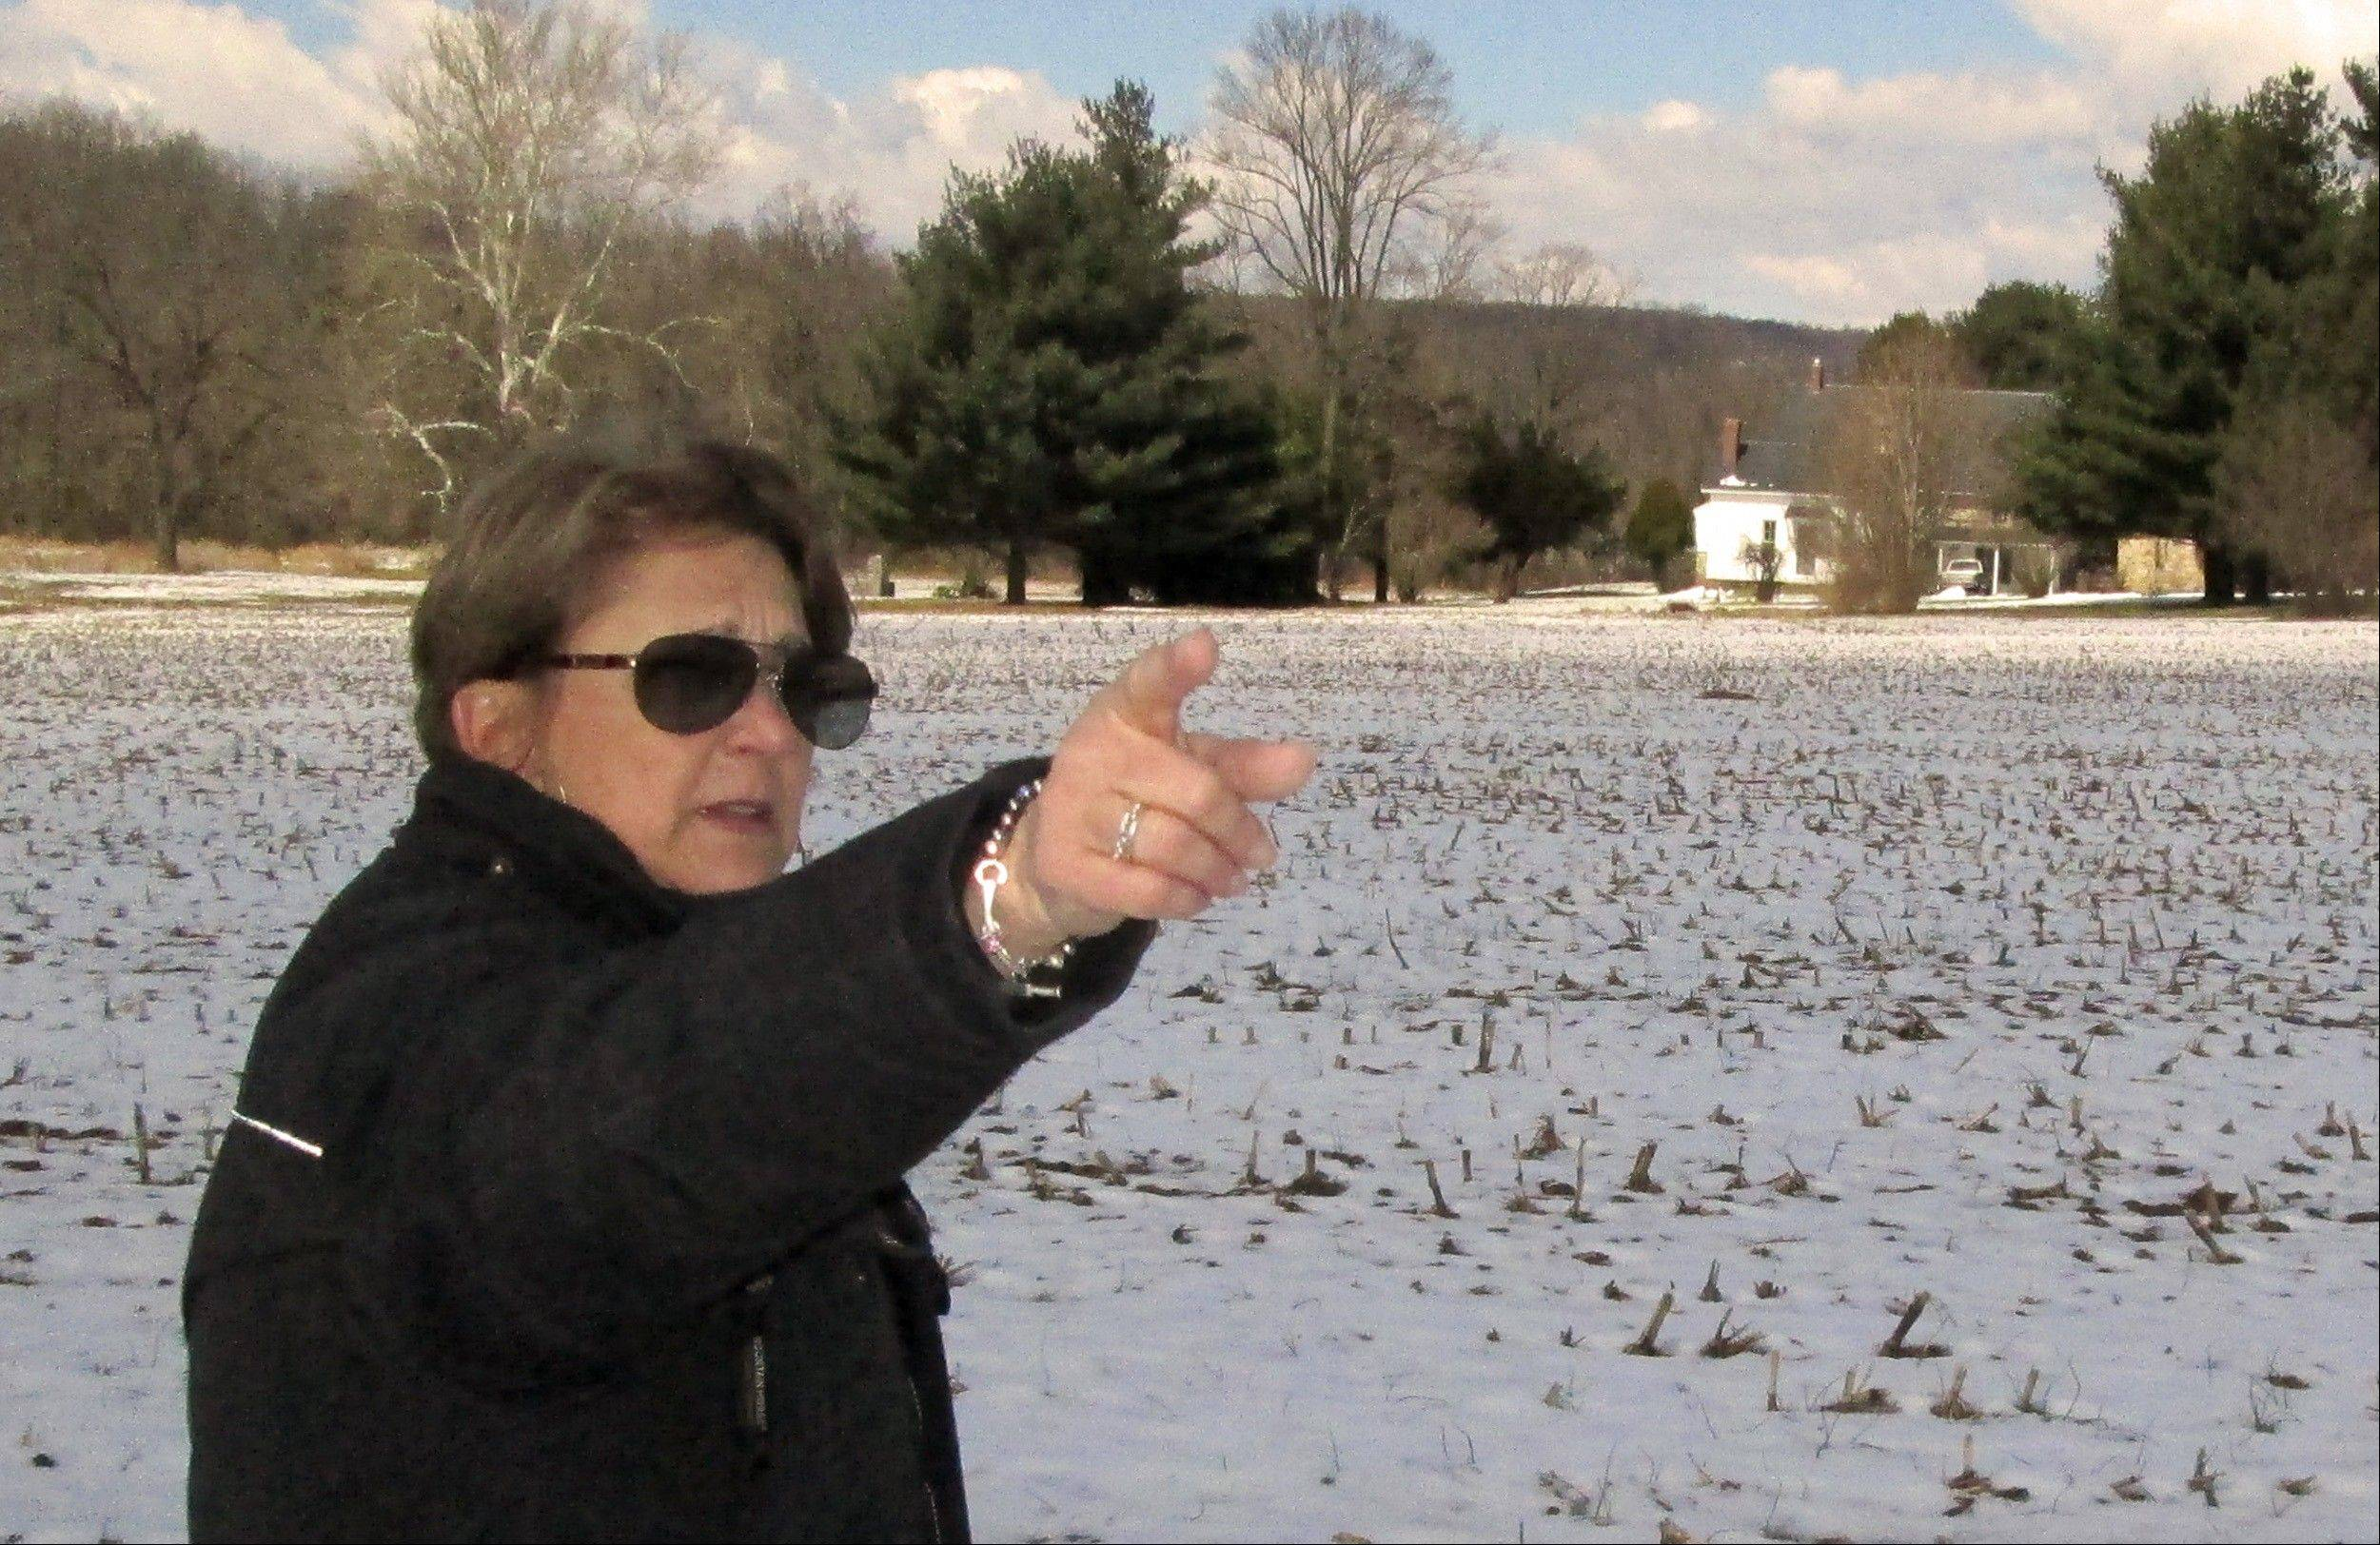 Associated Press In this photo from March 26, Carol Tanzola, president of Friends of Camp Security, points out the property on a 47-acre parcel, located about four miles east of York, Pa. It includes the spot where a 1979 archaeological study found numerous artifacts that confirmed local lore that the area had once served as Camp Security, a prison for the English, Scottish and Canadian soldiers who were captured after defeats in the battles of Saratoga and Yorktown.